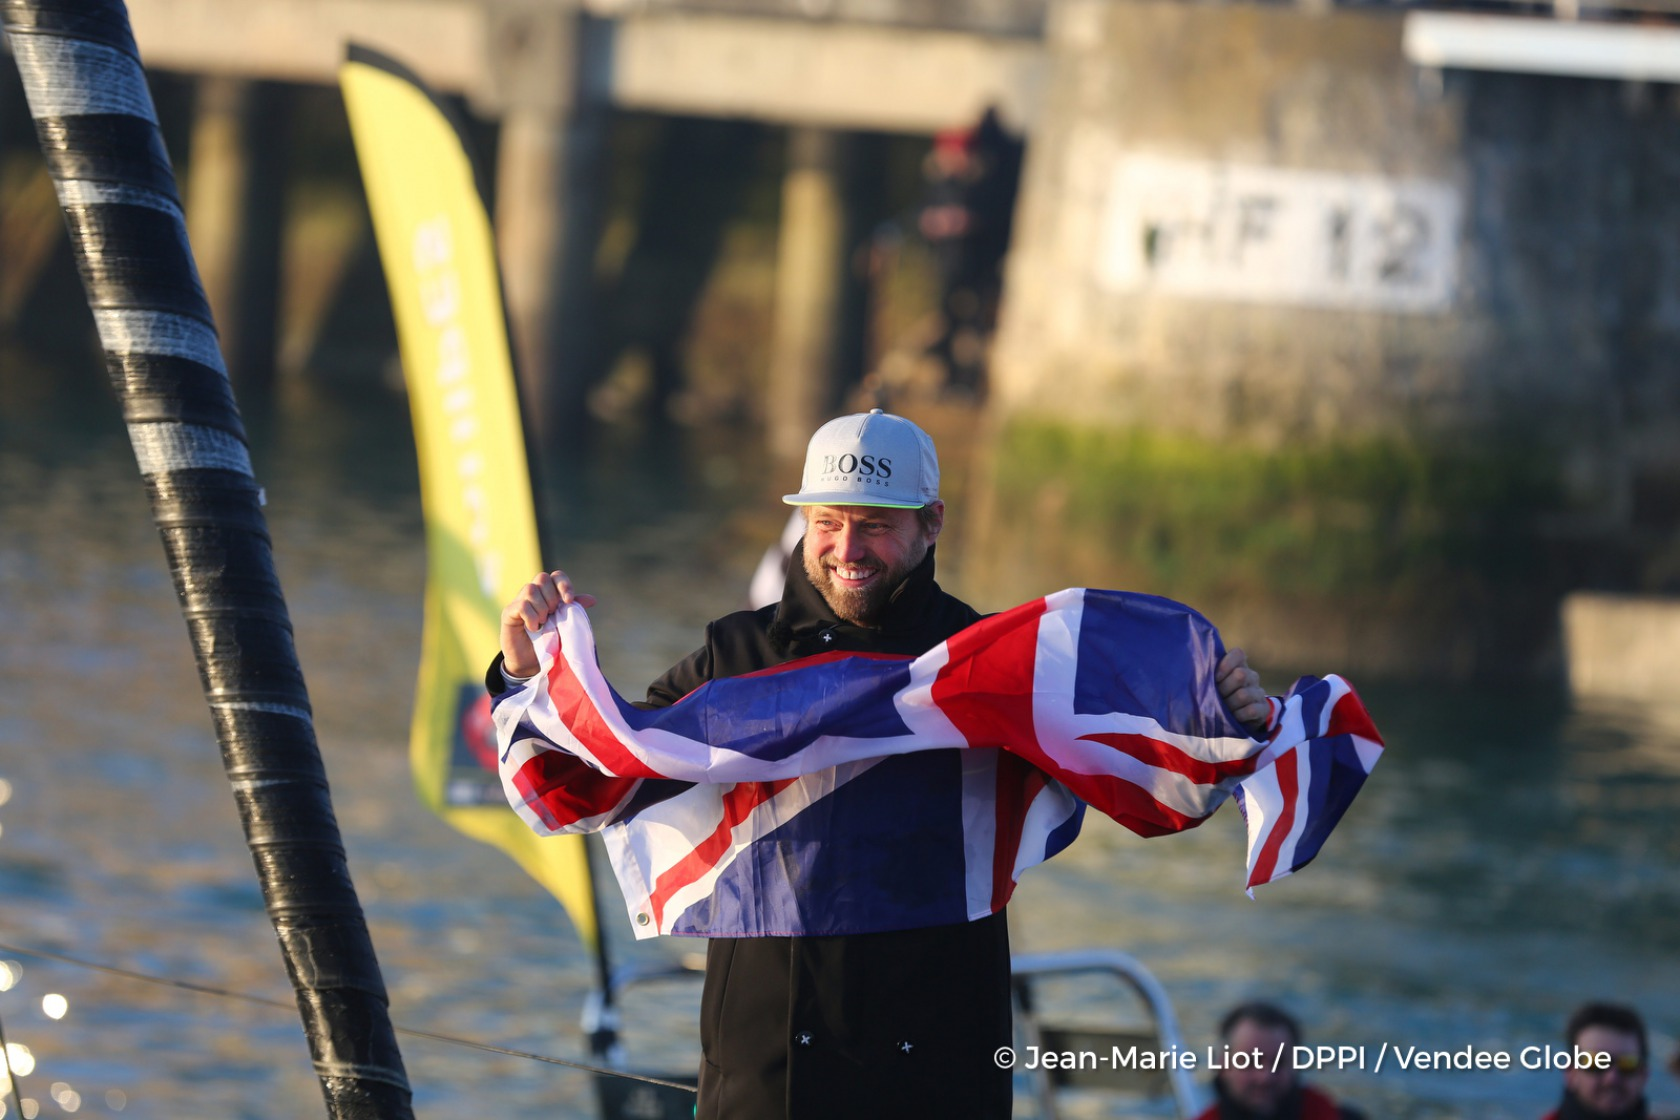 Finish arrival of Alex Thomson (GBR), skipper Hugo Boss, 2nd place of the sailing circumnavigation solo race Vendee Globe, with Union Jack's flag, in Les Sables d'Olonne, France, on January 20th, 2017 - Photo Jean-Marie Liot / DPPI / Vendee Globe